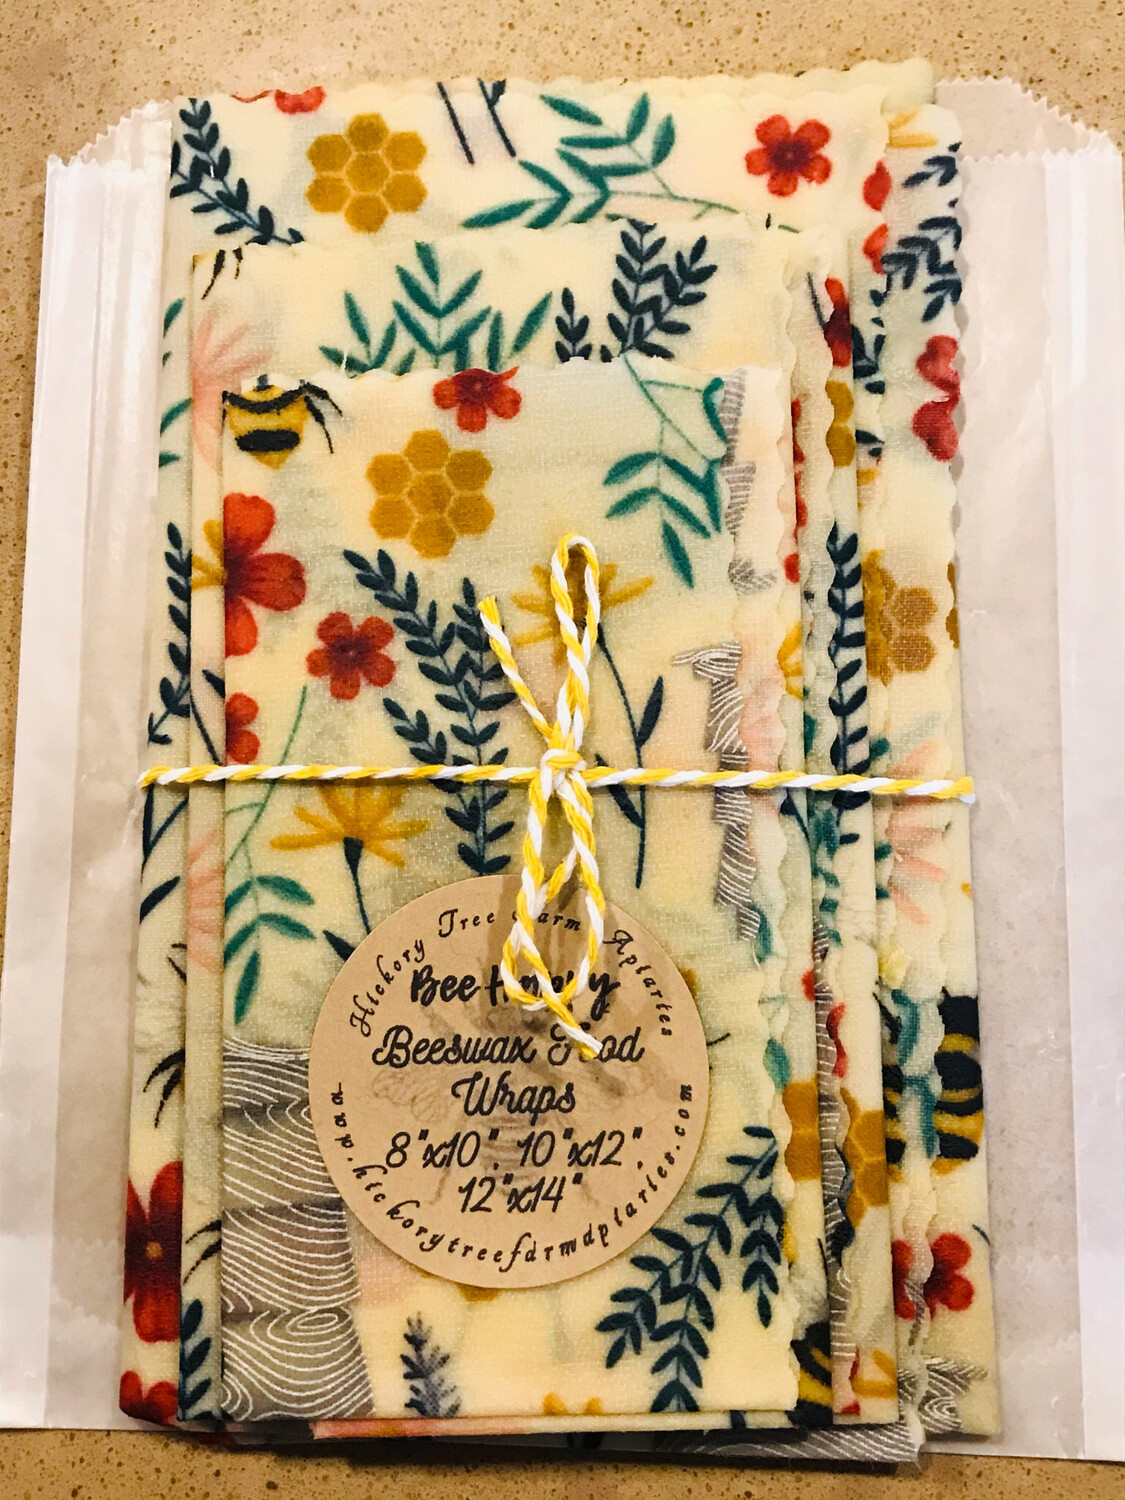 Beeswax Food Wraps (Bees and Hives)